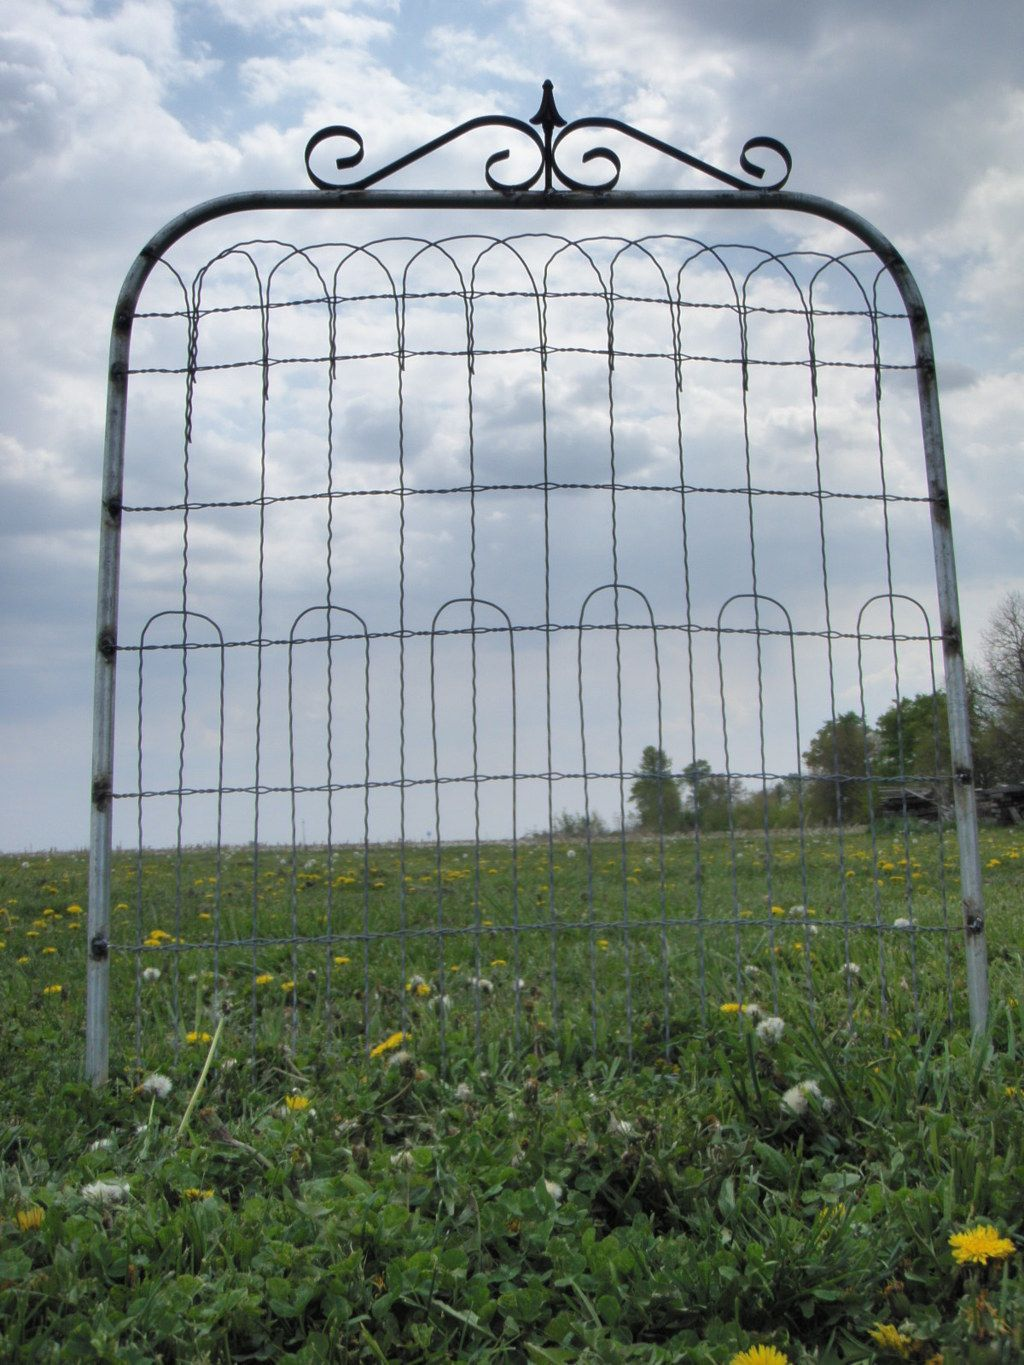 36 Tall X 36 Wide Wire Fence Garden Gate This Ornamental Wire Gate Is Made  With 36 Tall Fence. The Width Is 36 From Side To Side. Height Is